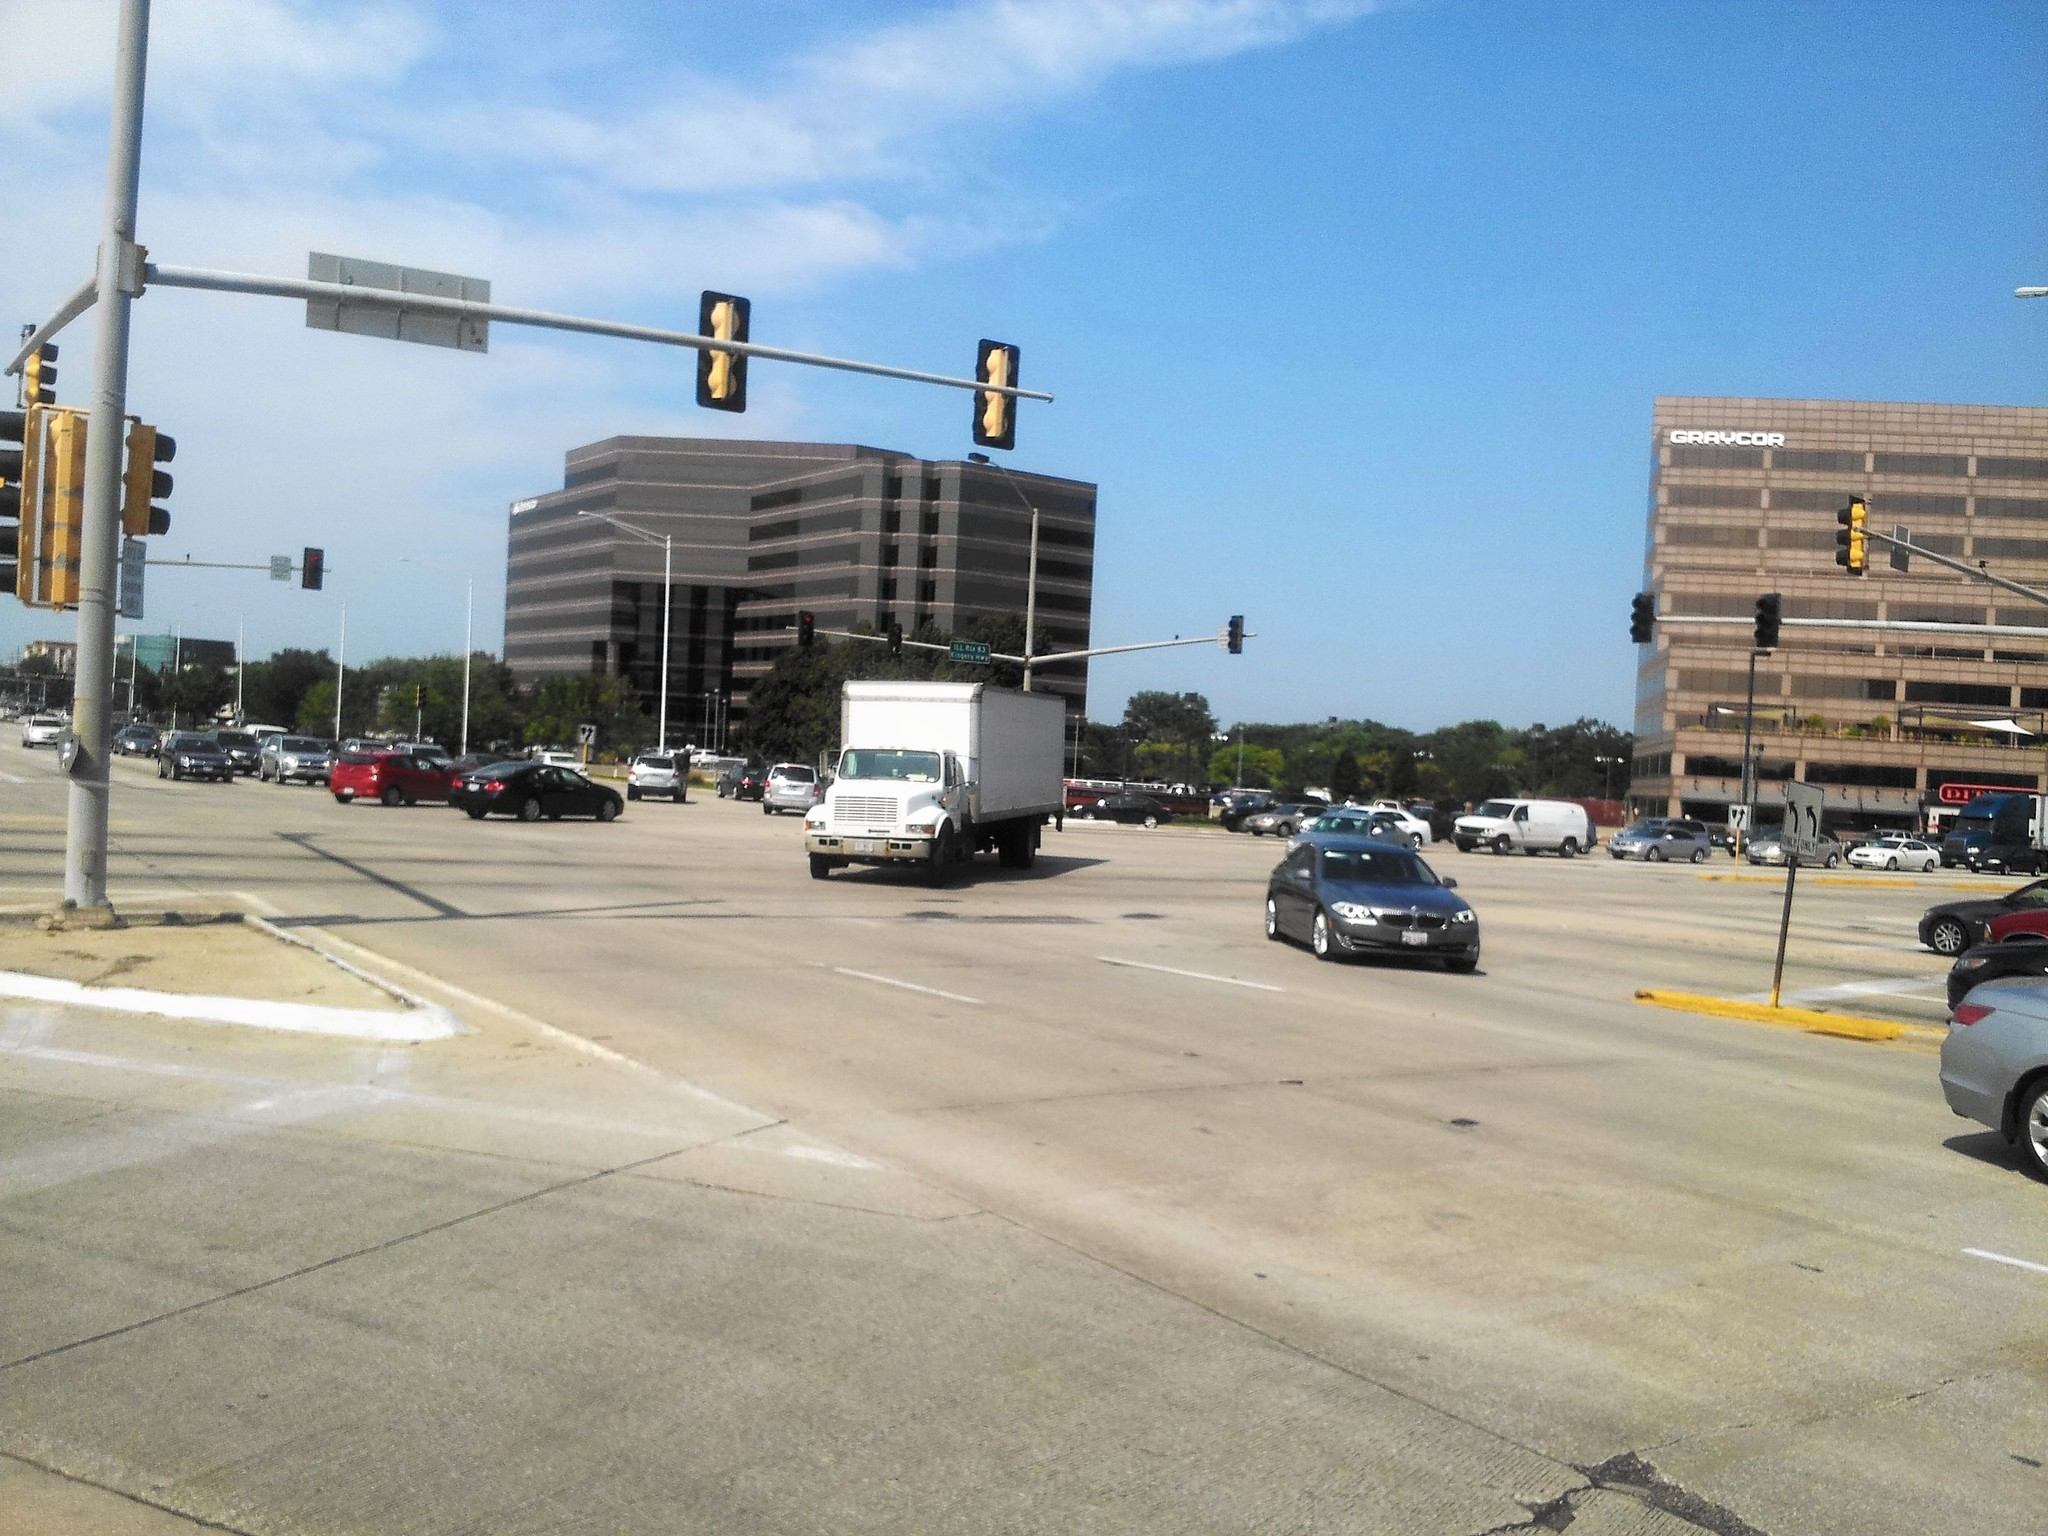 Oak Brook considers lawsuit to stop red light cameras - The